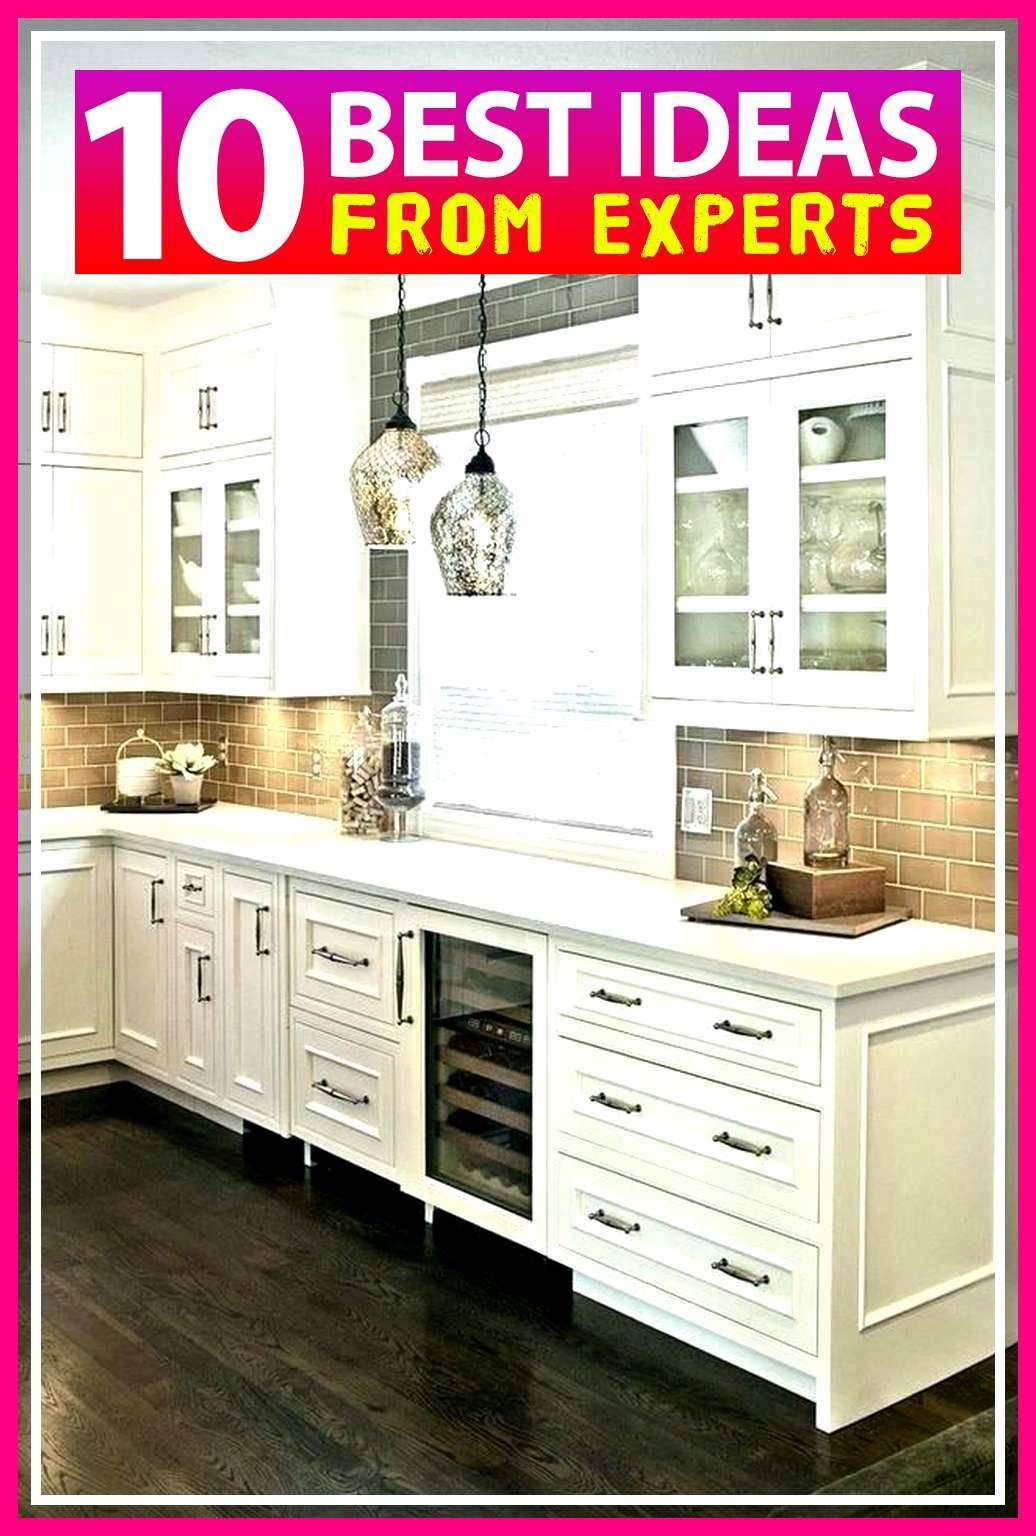 This Is 10 Popular Best Way To Clean White Painted Kitchen Cabinets For Your Home Id Painting Kitchen Cabinets White Painting Kitchen Cabinets Kitchen Cabinets